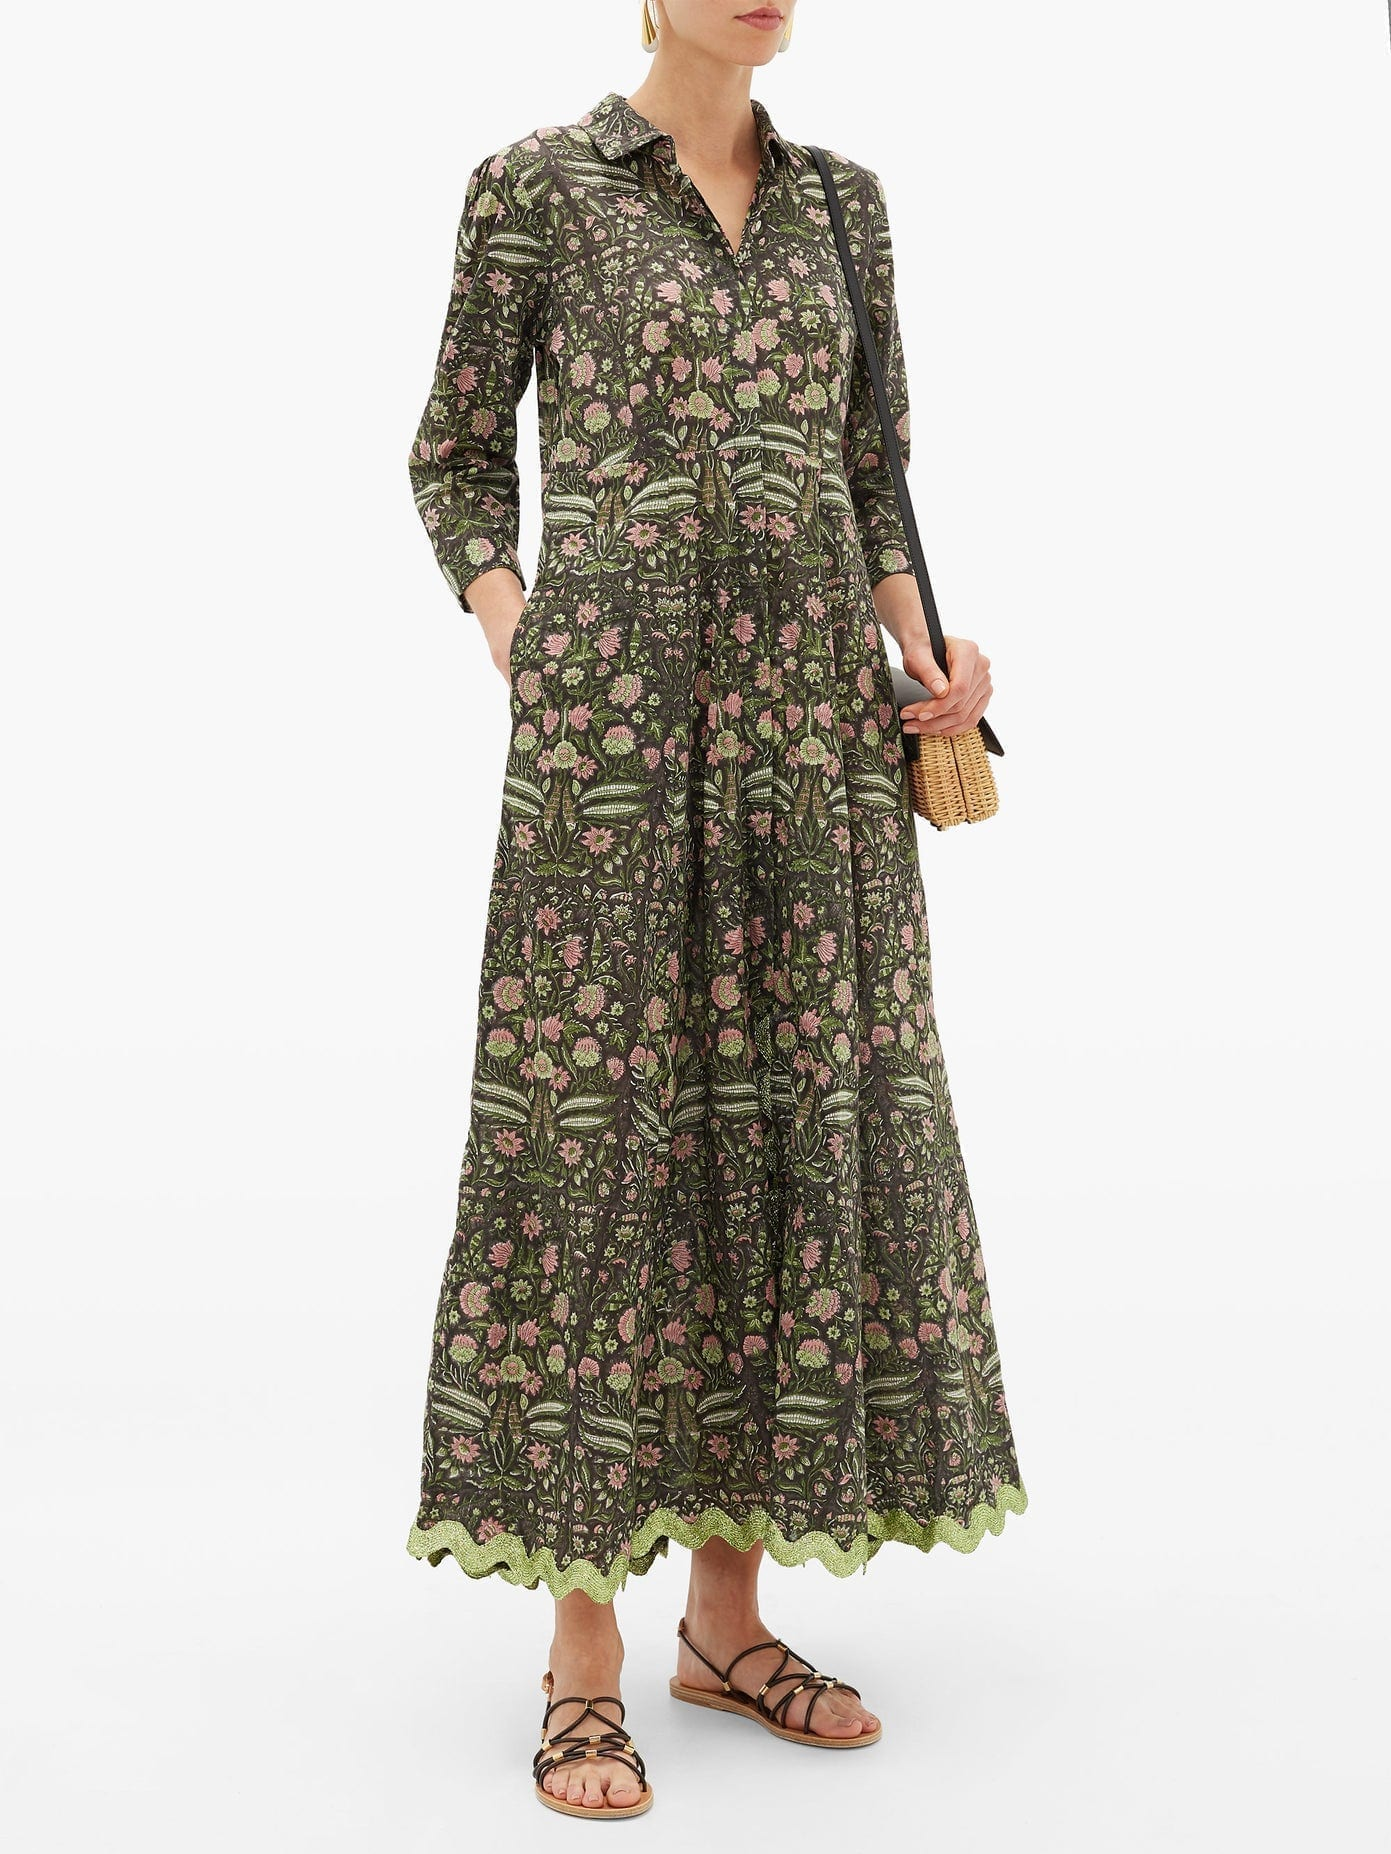 JULIET DUNN Floral-print Metallic-trim Cotton Shirt Dress